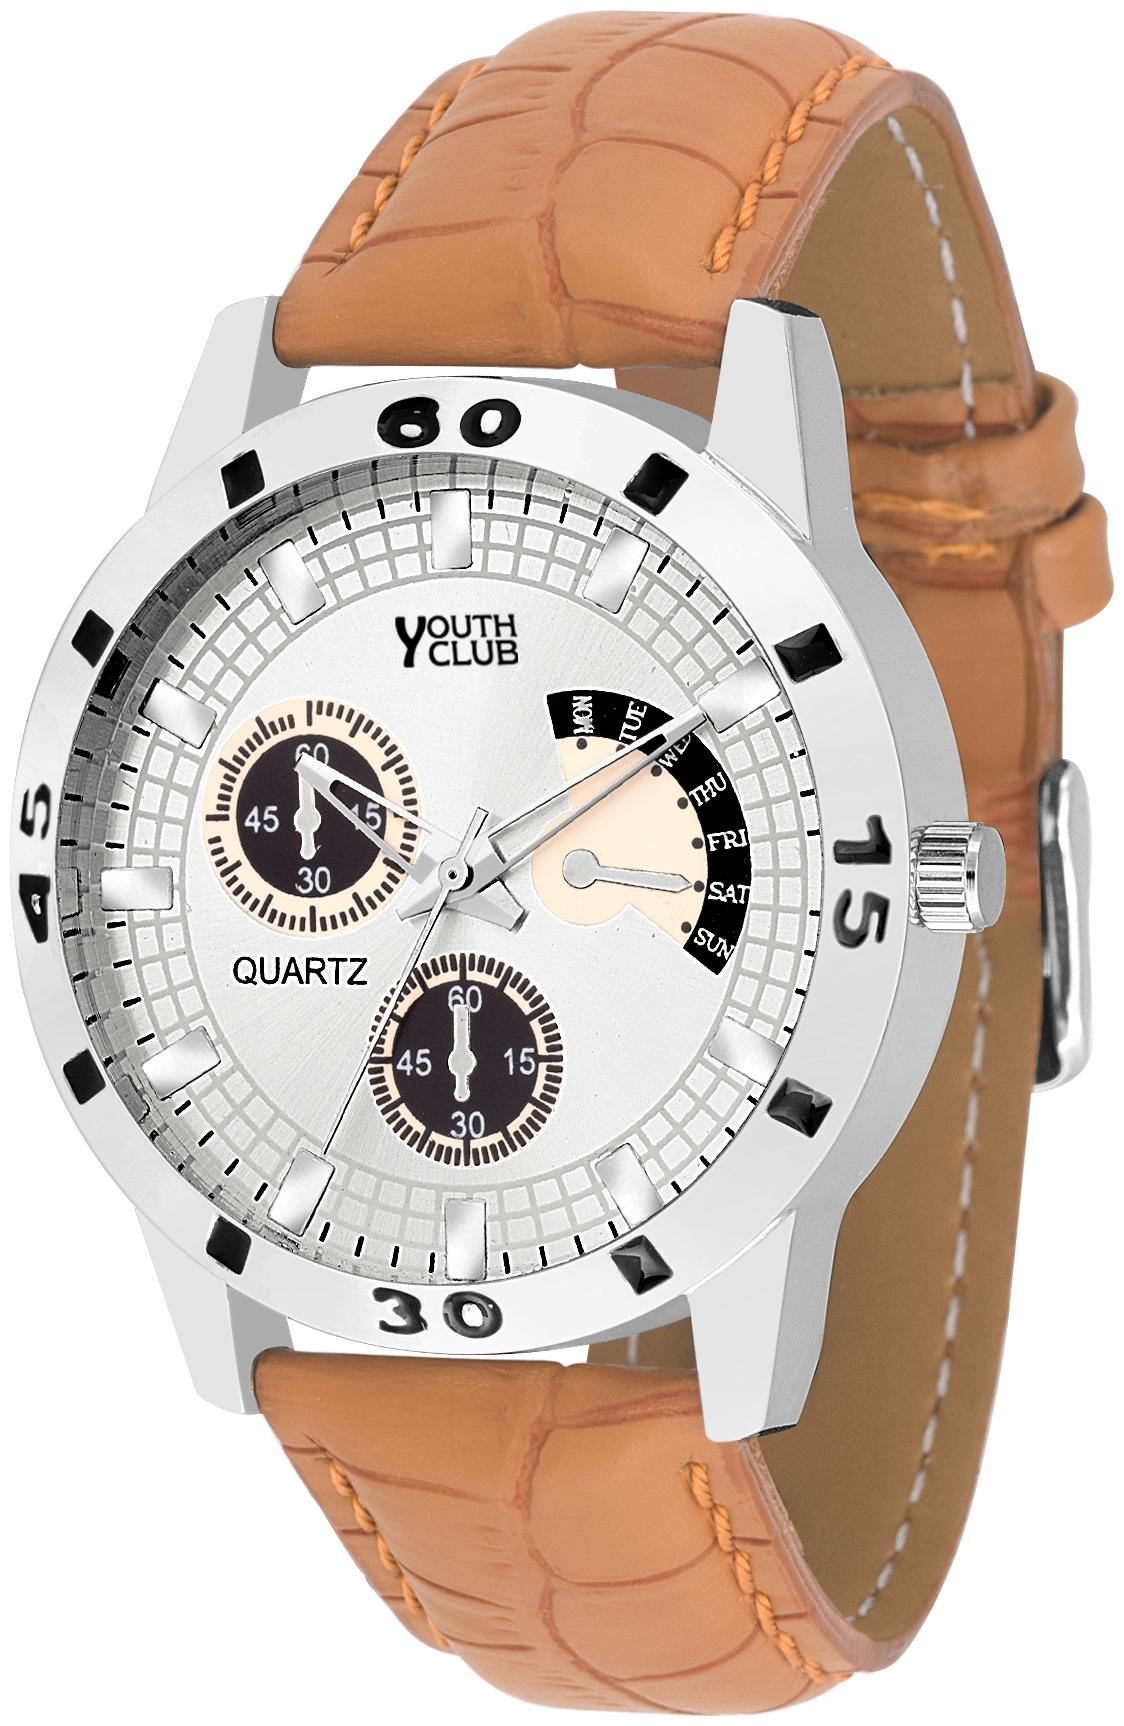 Youth Club YCS 27TAN NEW CHRONO PATTERN ANALOG DIAL Watch   For Boys by Shiva Traders